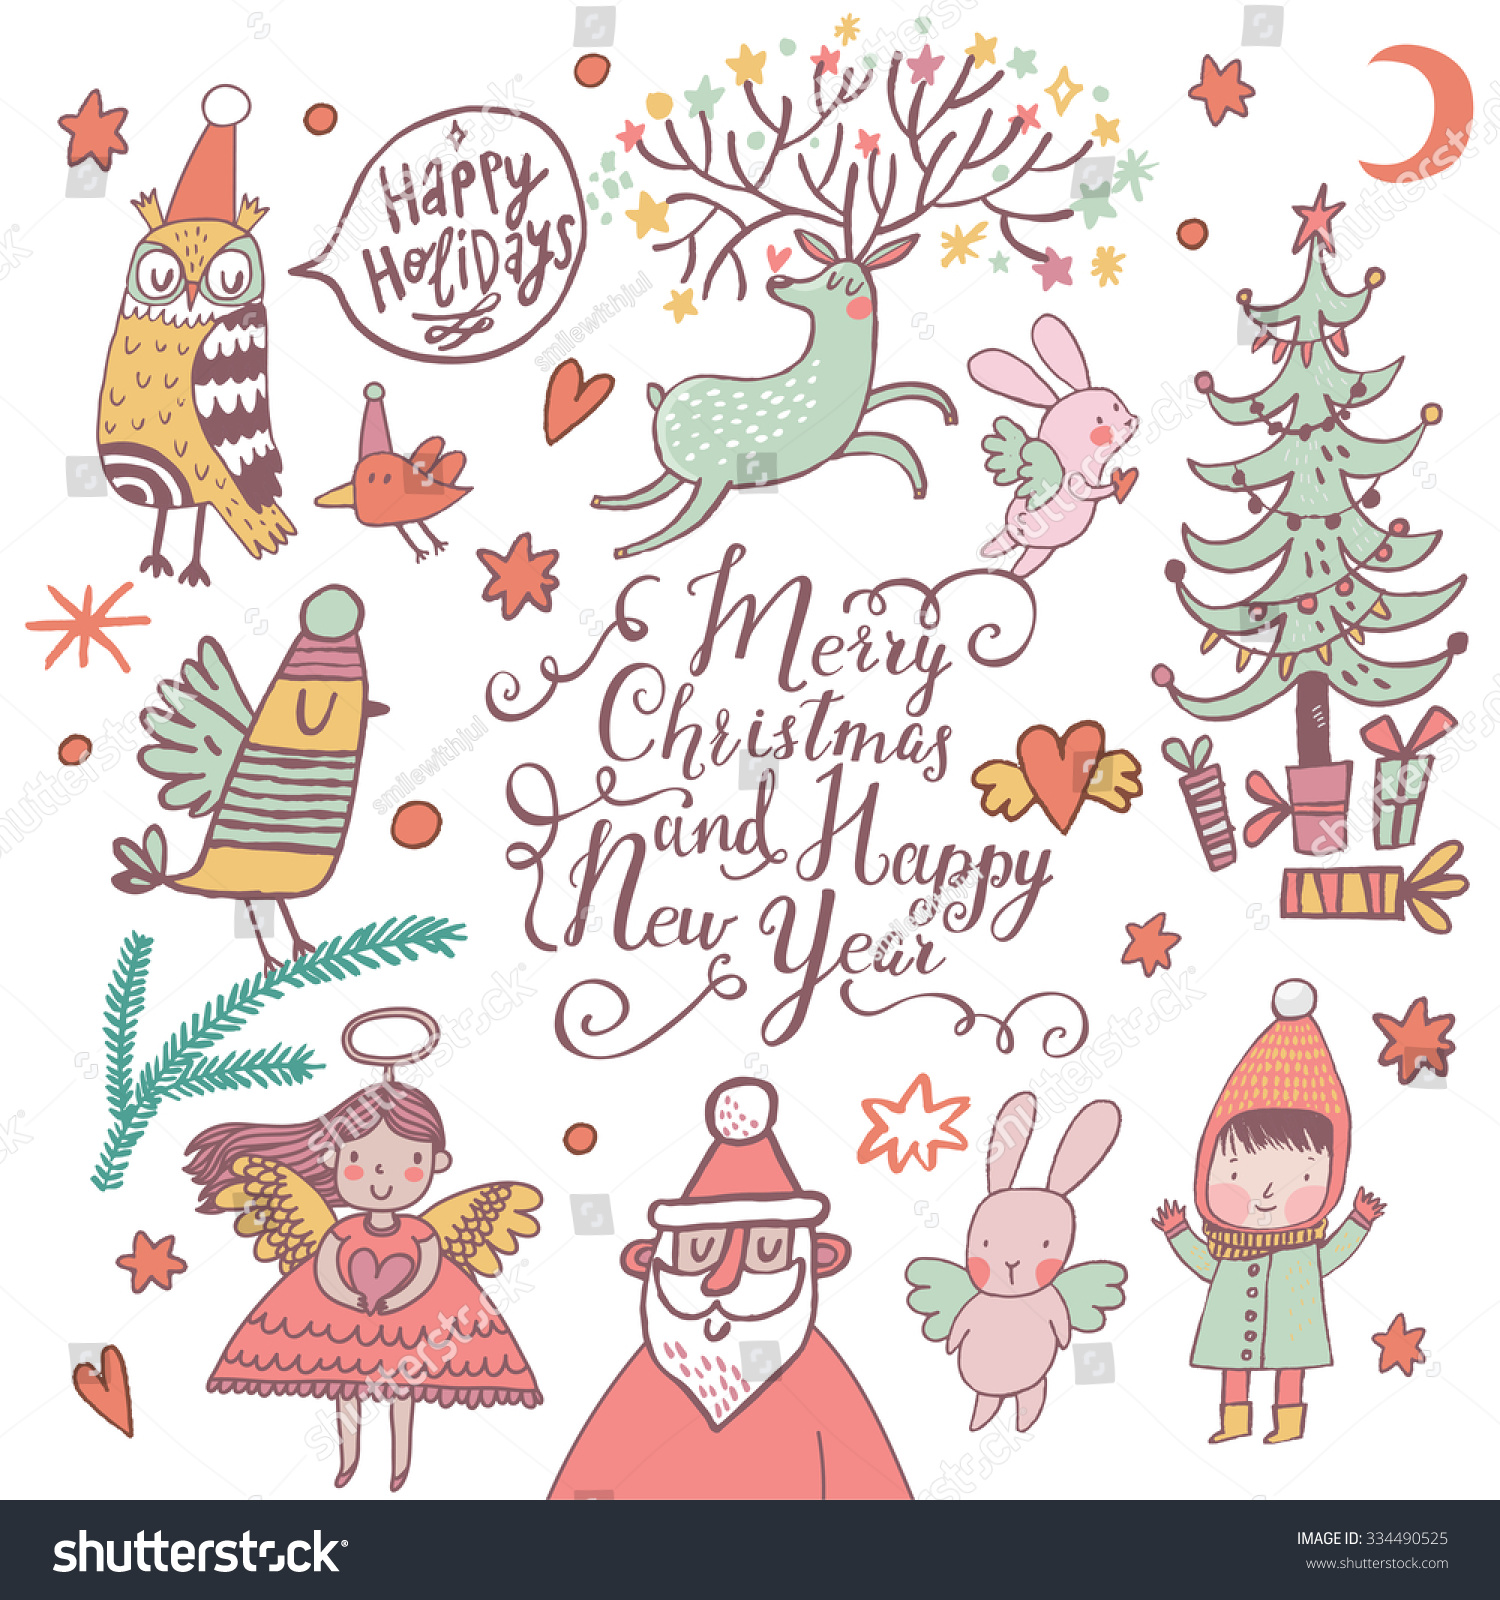 Superieur Merry Christmas And Happy New Year Awesome Card In Vector. Stylish Holiday  Background With Santa